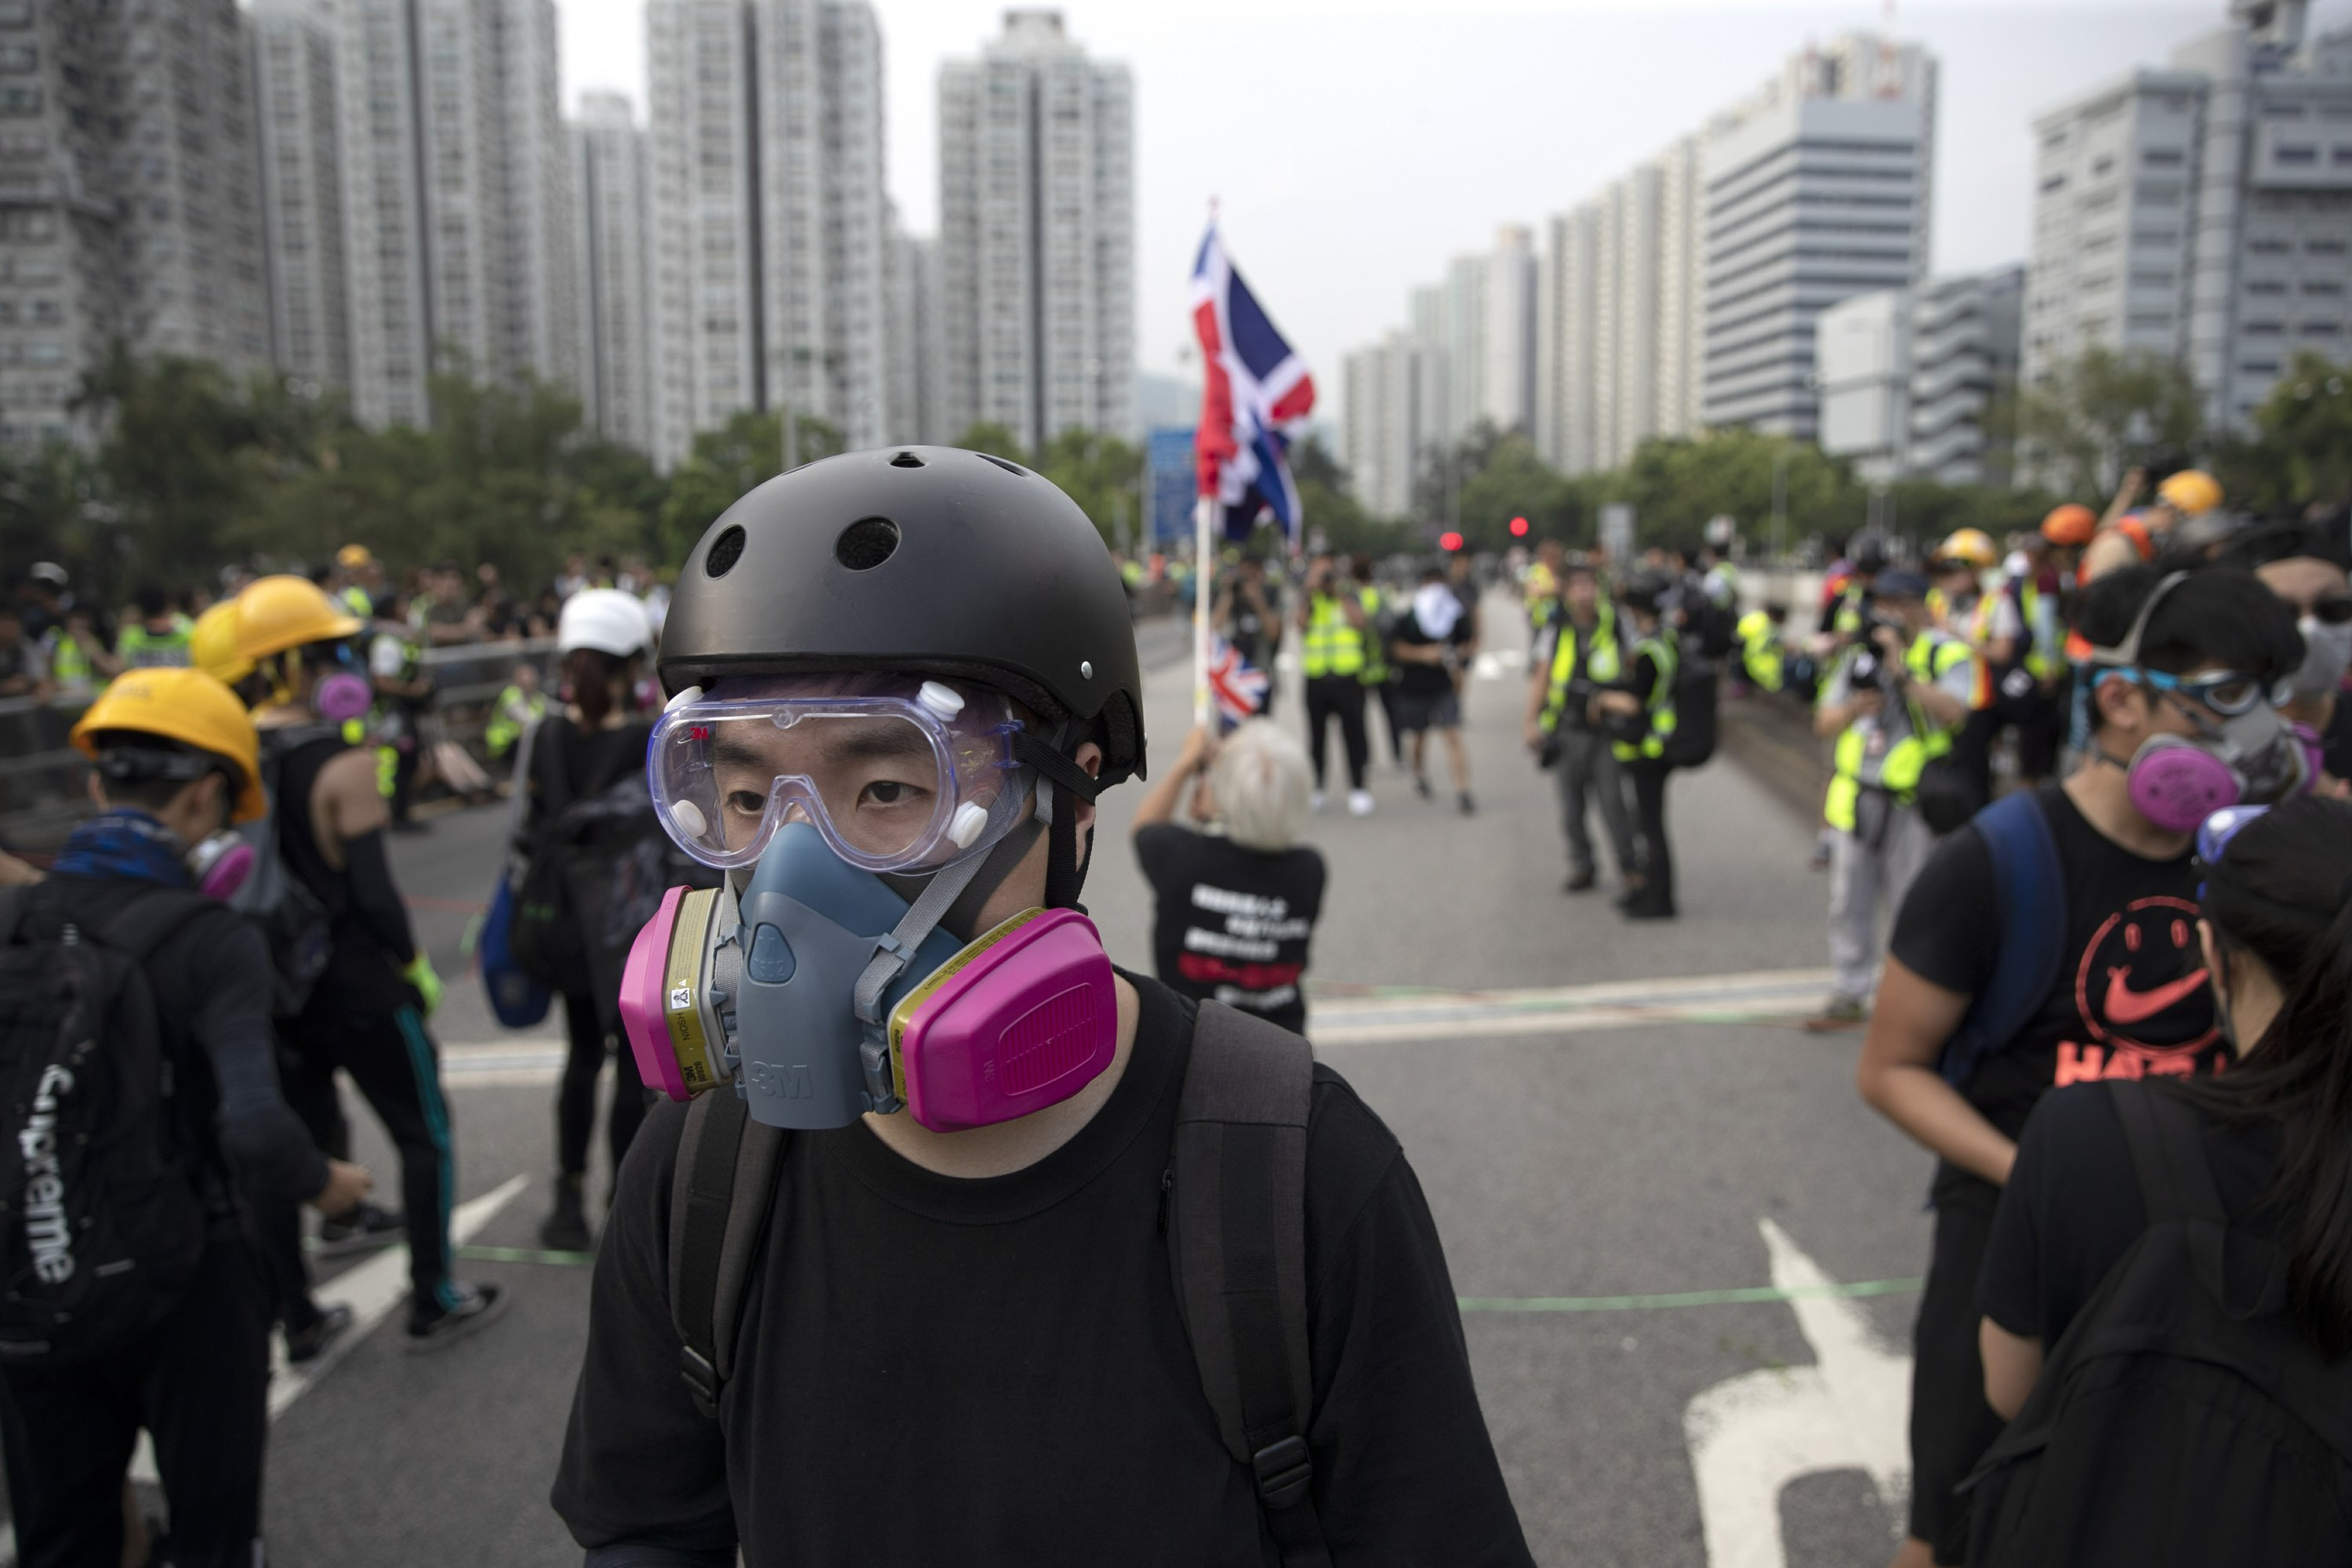 'Protesters vs. police': HK die-hards defend their stance